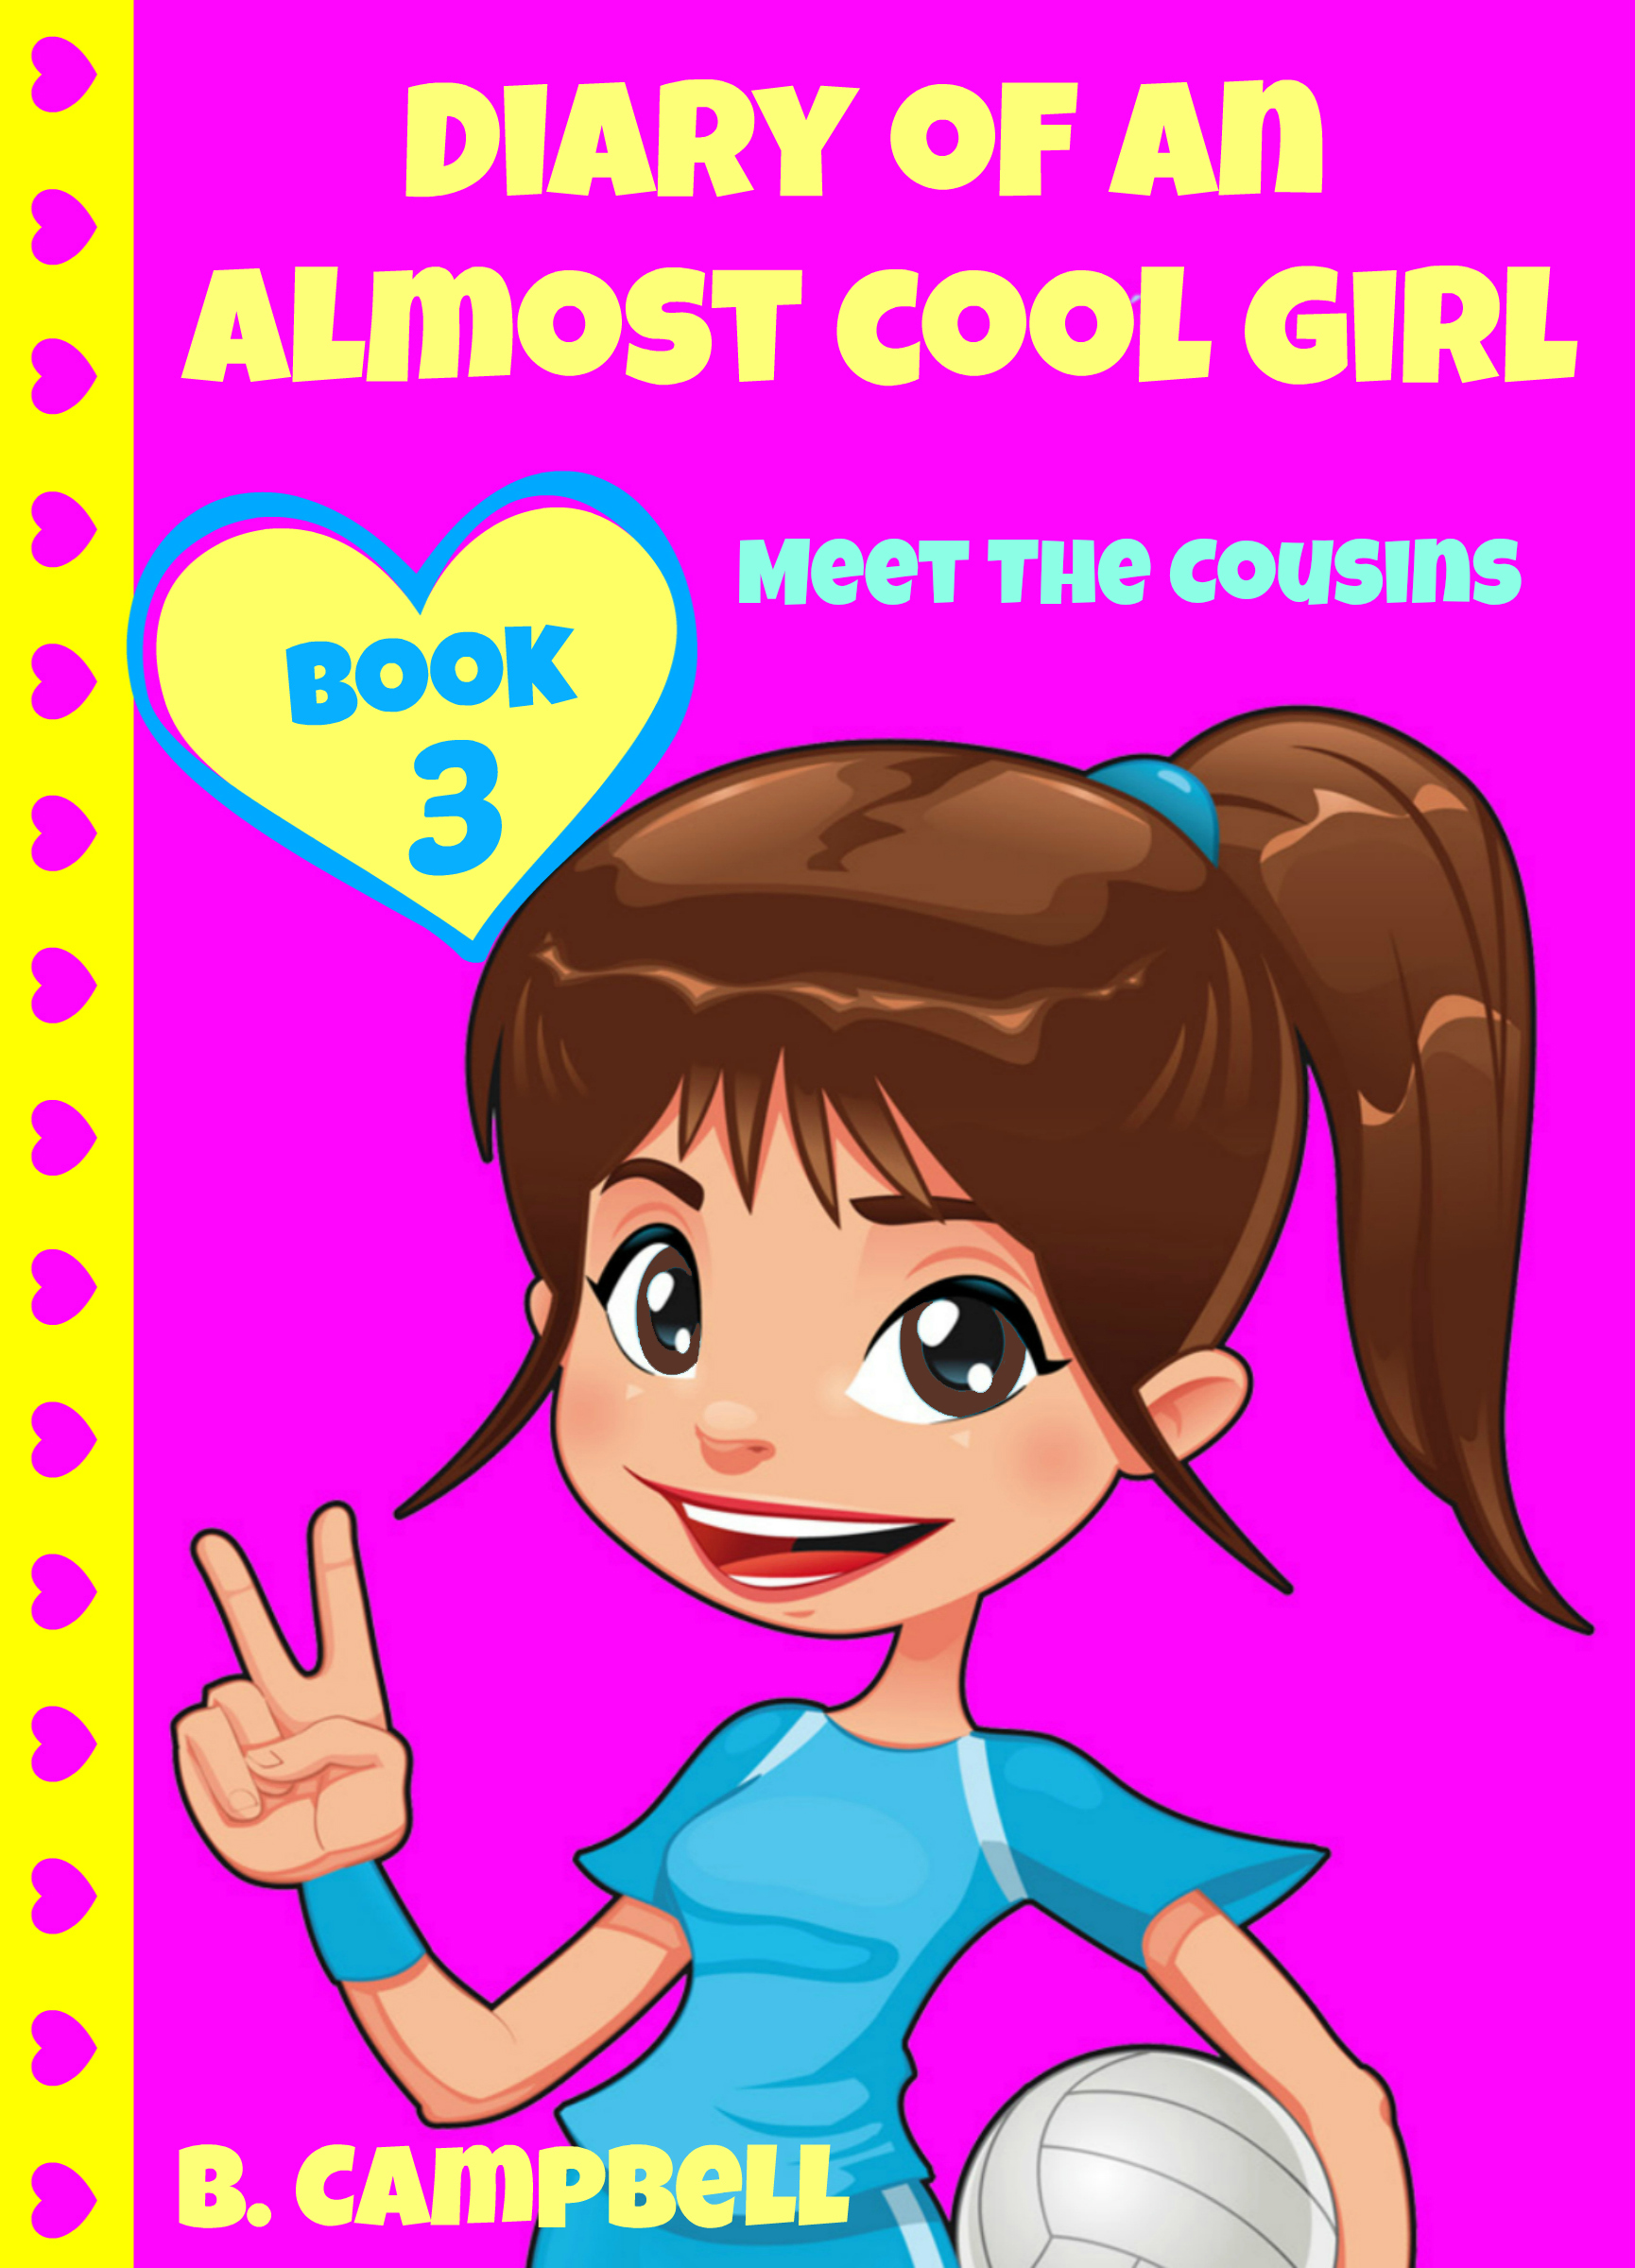 Diary of an almost cool girl - book 3 - meet the cousins